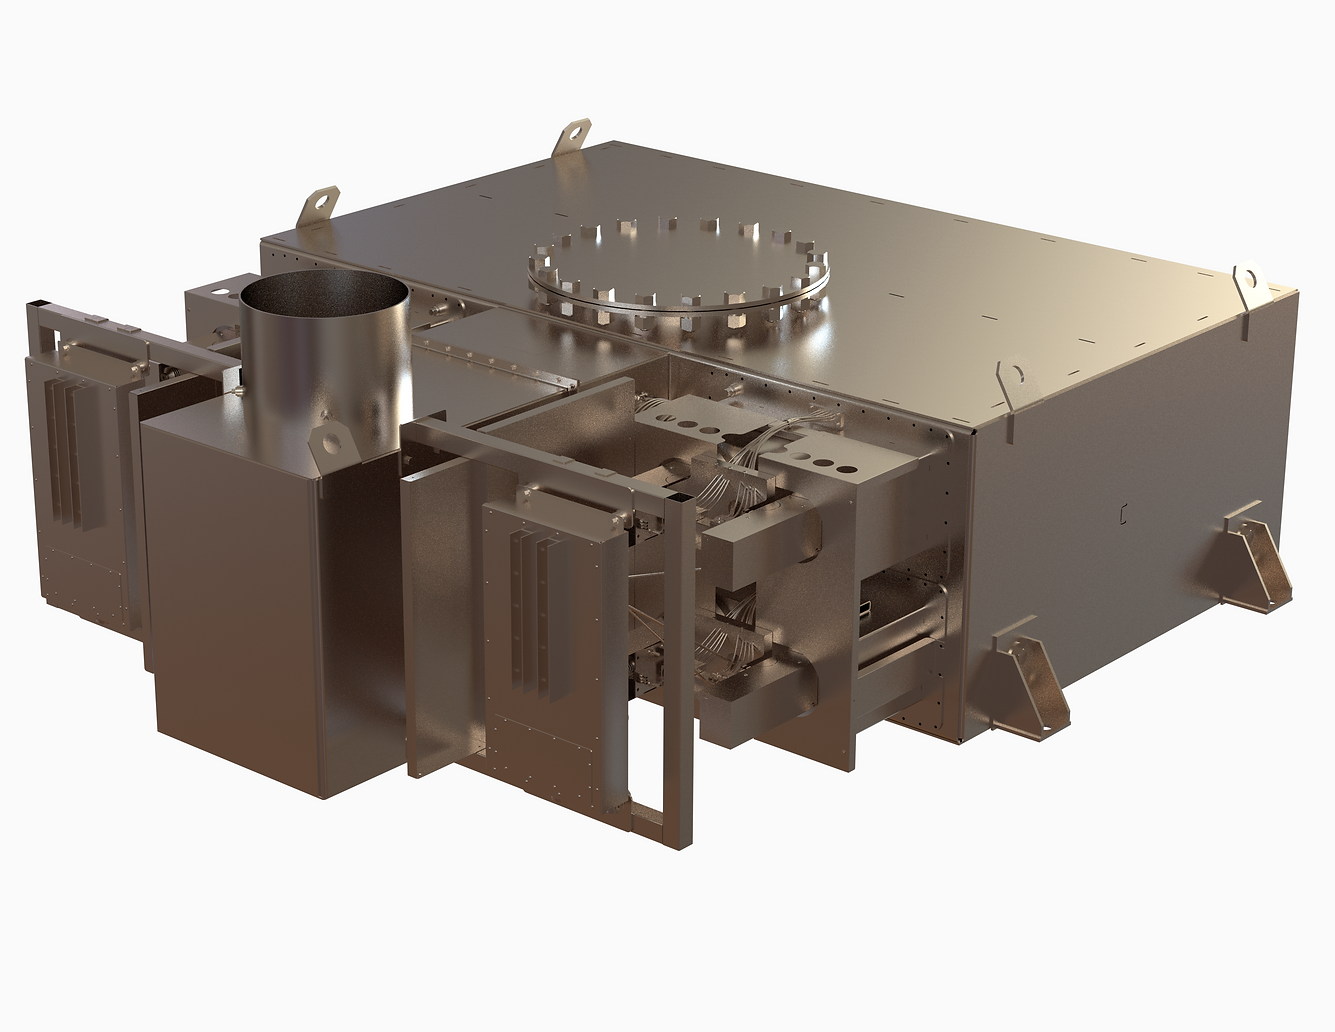 Rypos - ADPF-4 Active Filter for Genset Applications